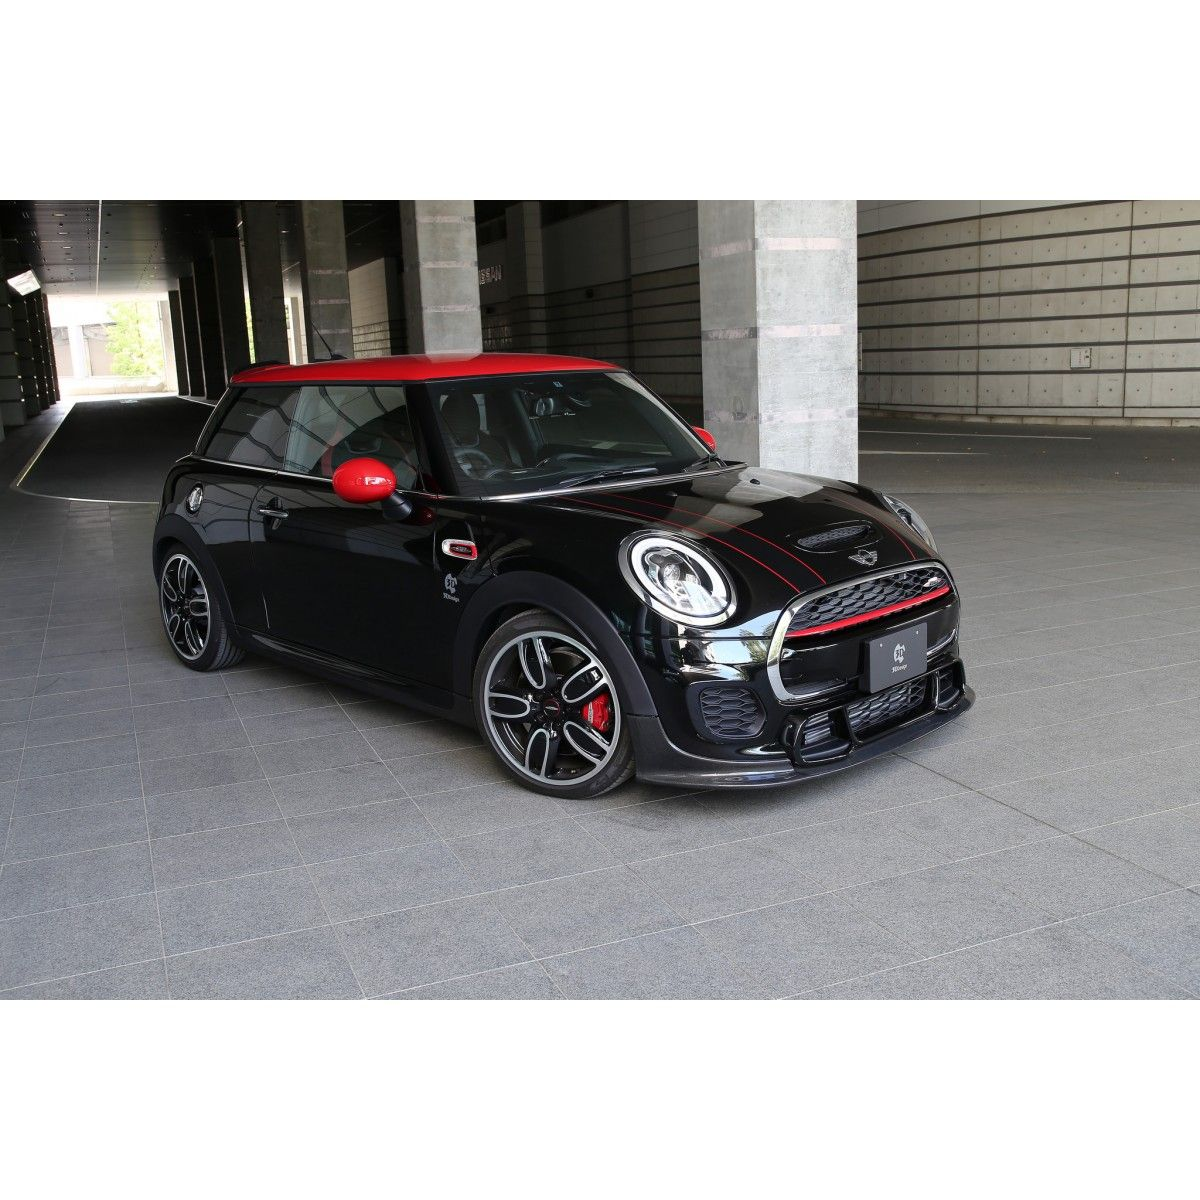 3ddesign carbon frontlippe f r mini cooper jcw f55 f56 jcw mini cooper mini john cooper. Black Bedroom Furniture Sets. Home Design Ideas